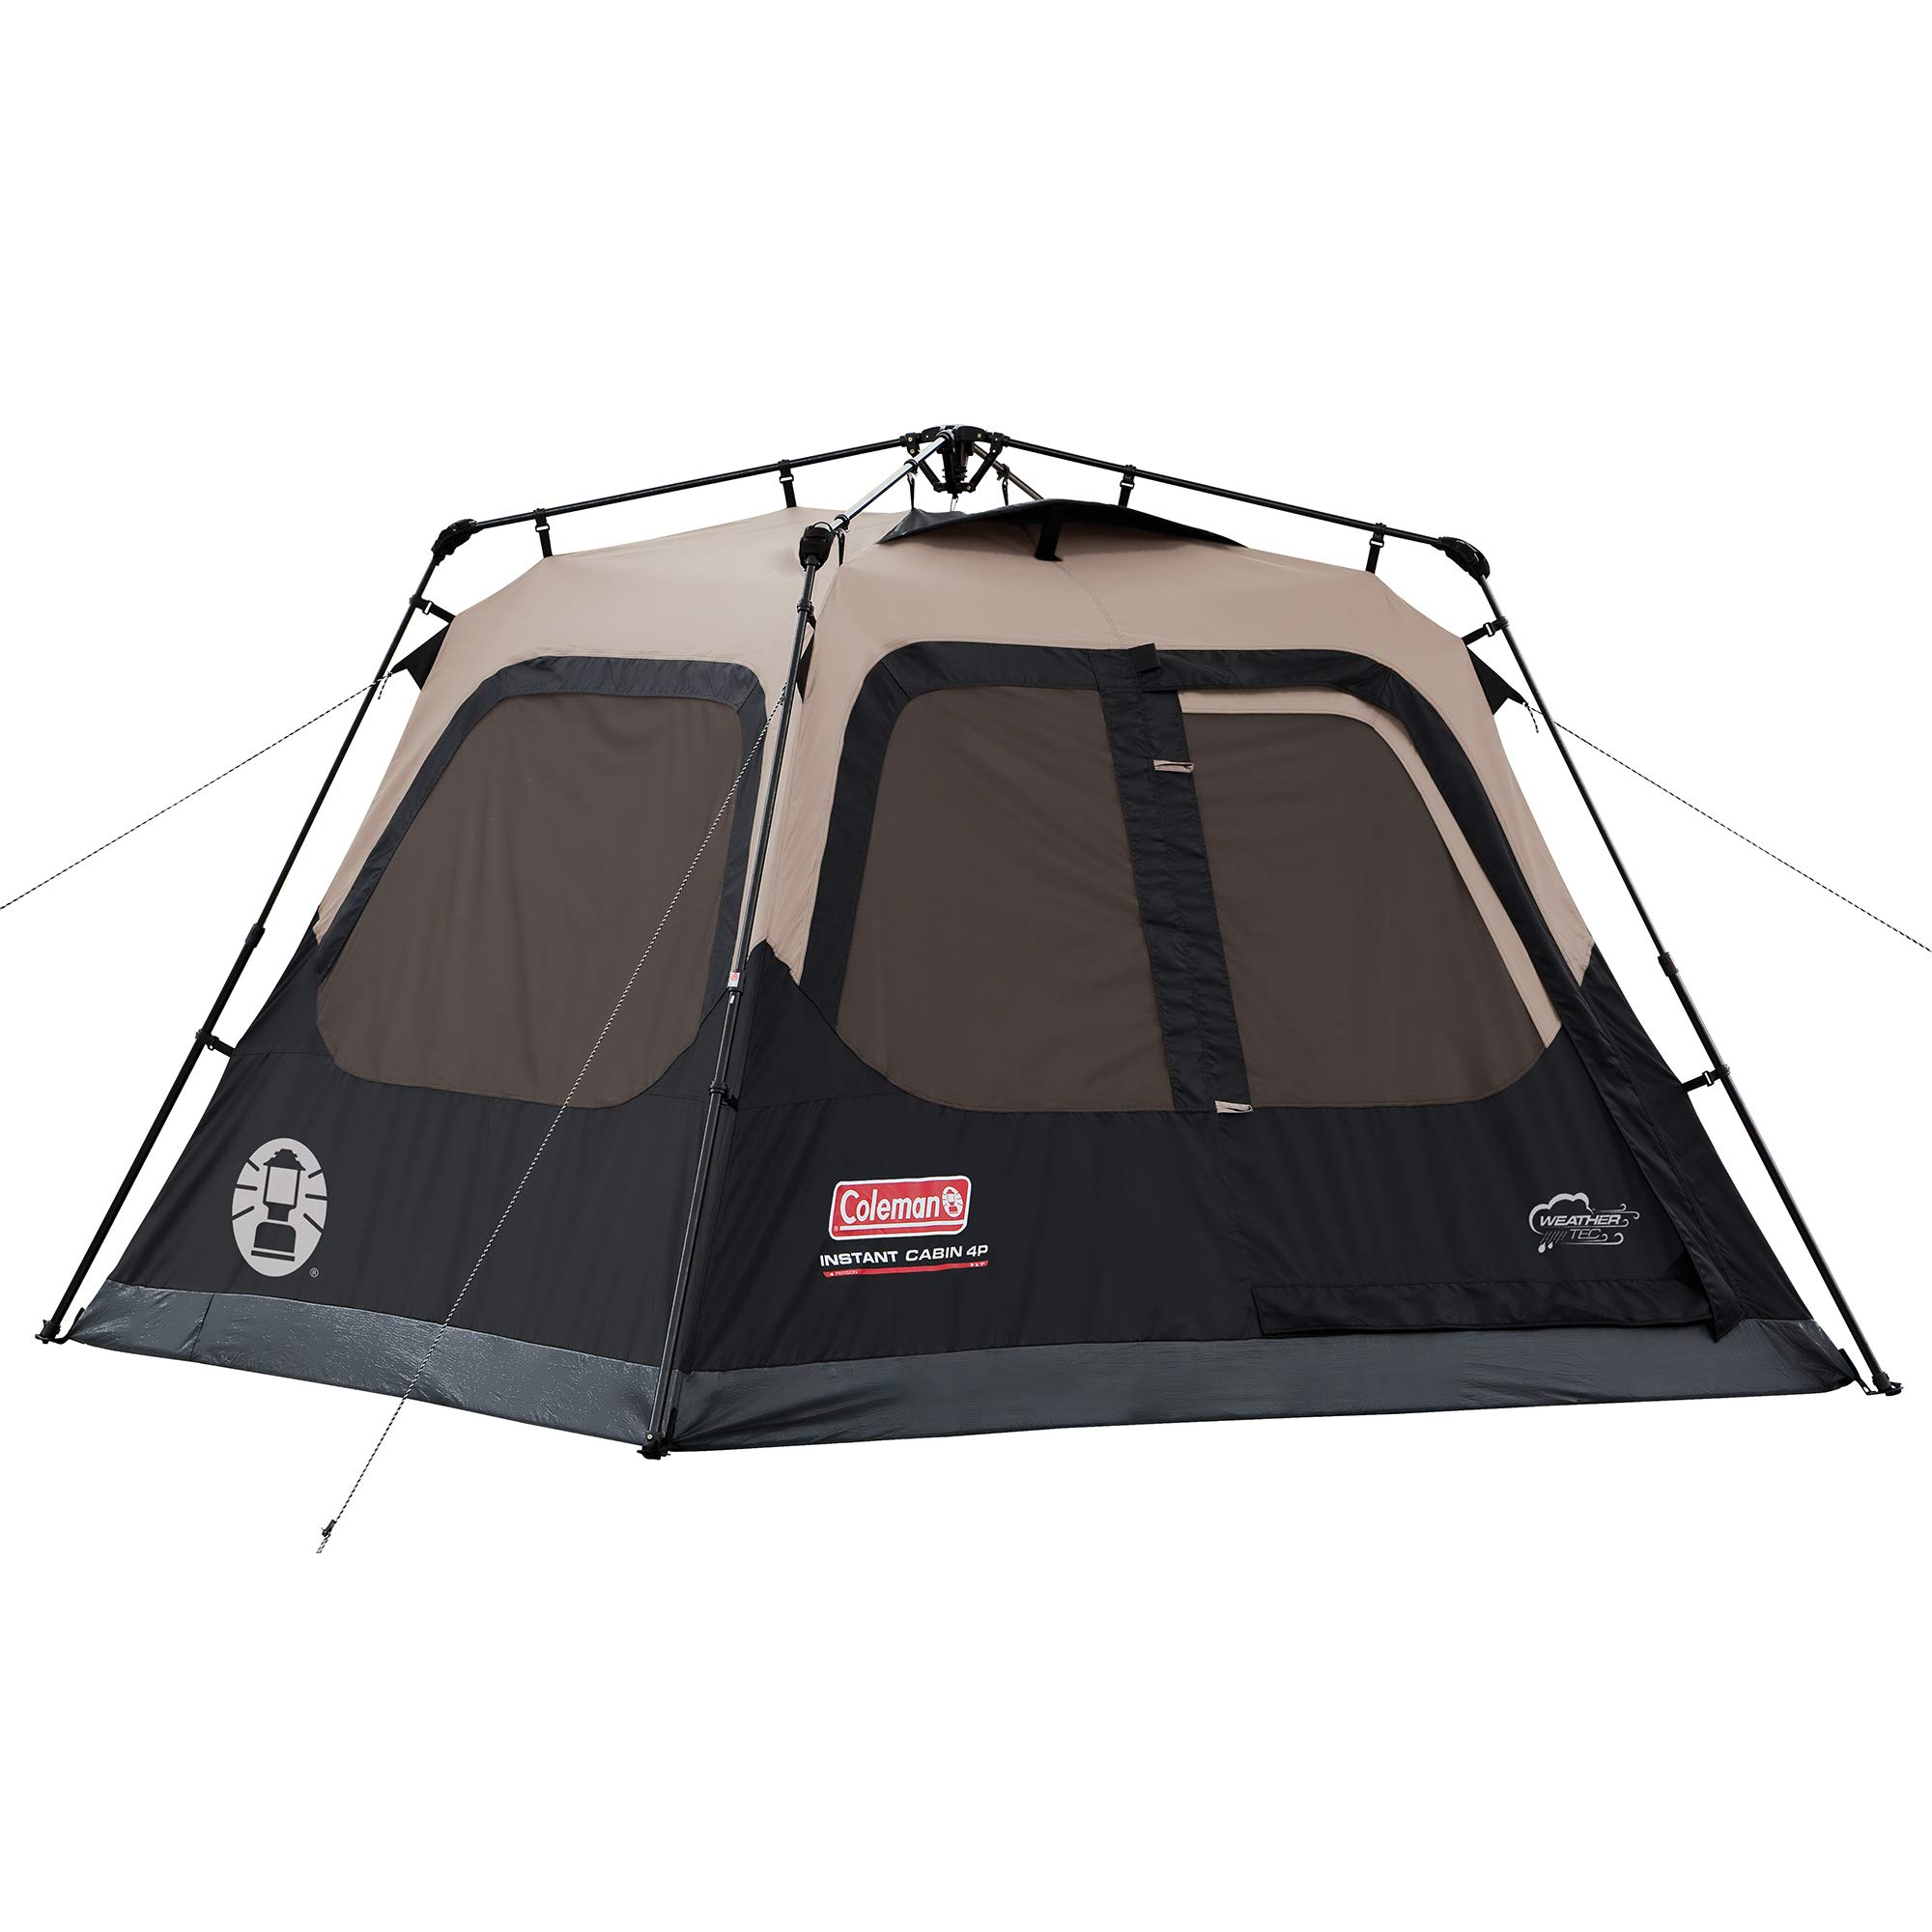 Coleman 4-Person Cabin Tent with Instant Setup | Cabin Tent for Camping Sets Up in 60 Seconds